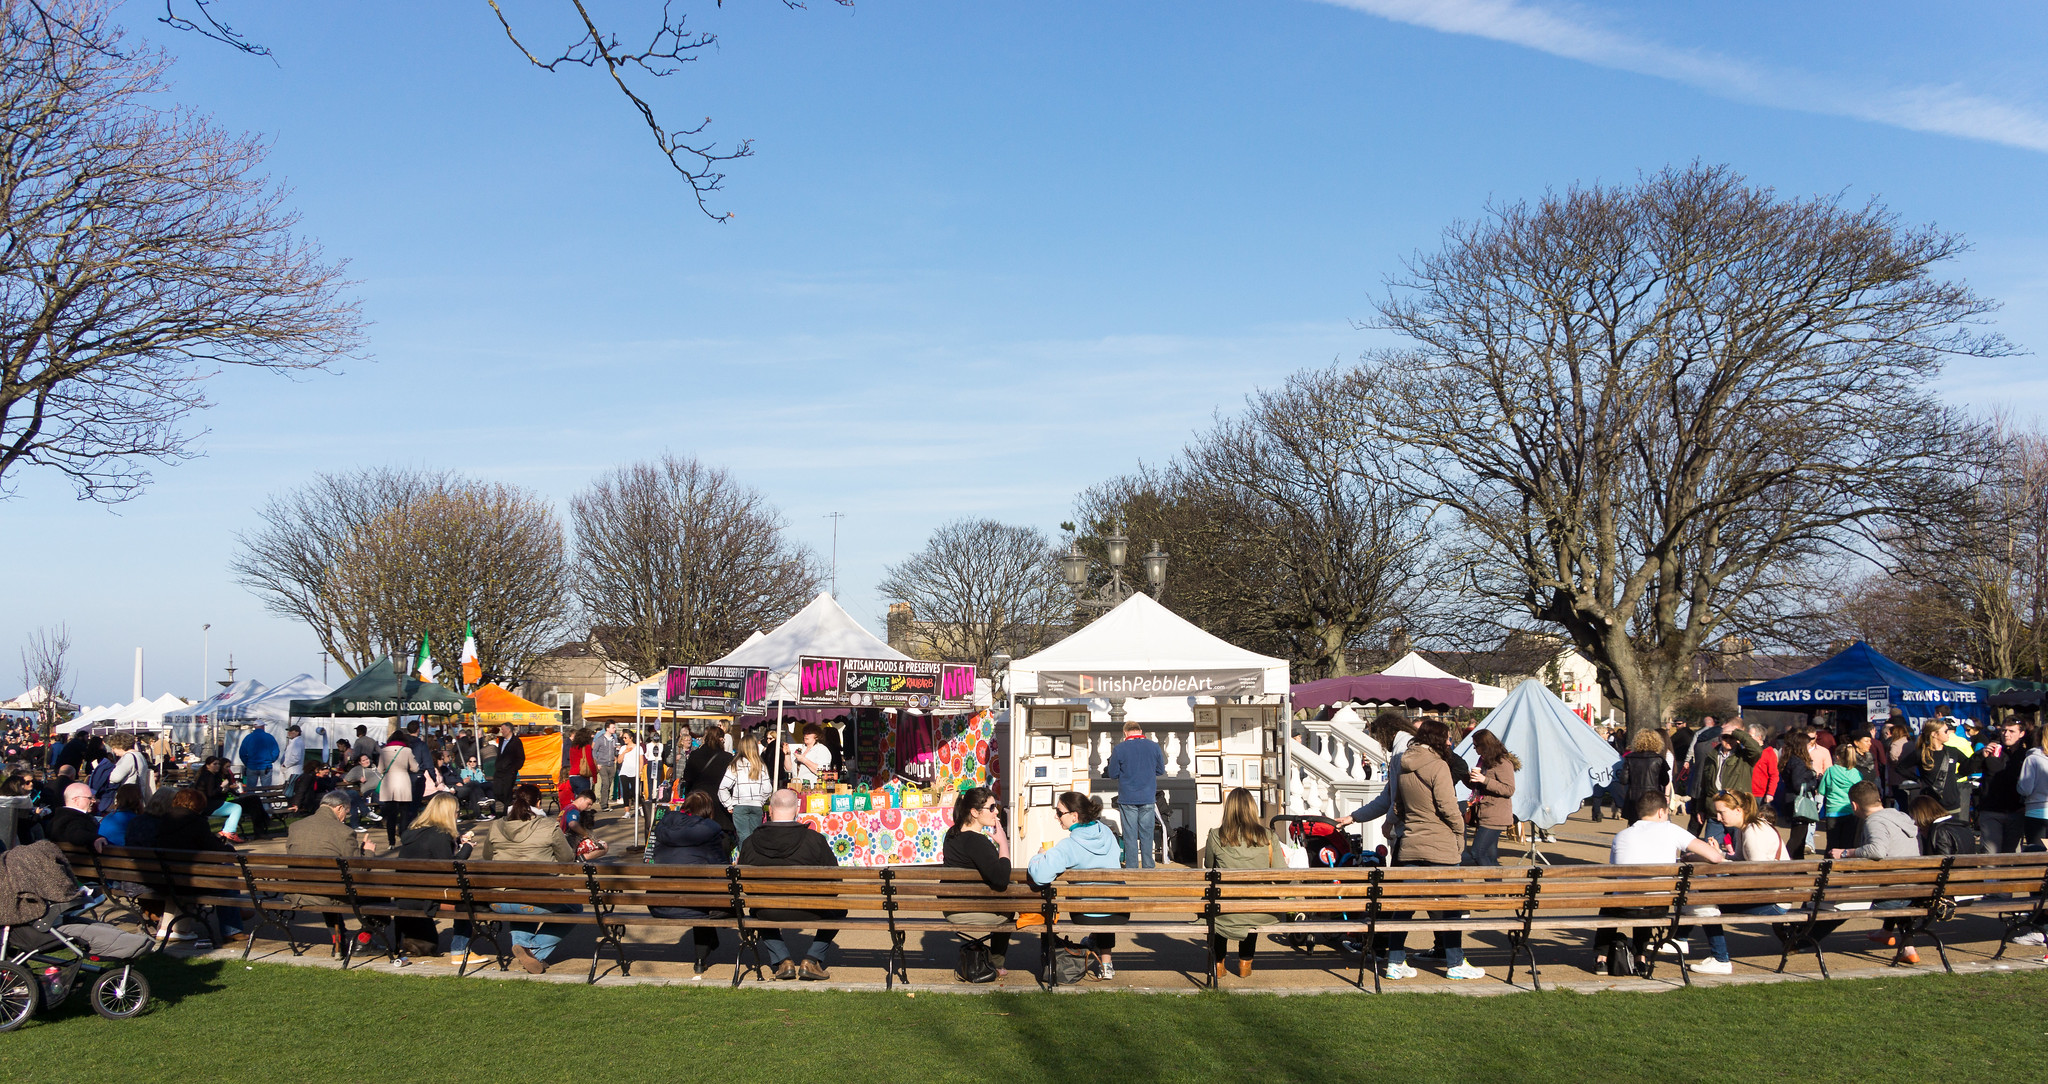 DUN LAOGHAIRE MARKET ON SUNDAY IN PEOPLE'S PARK - REF-102837